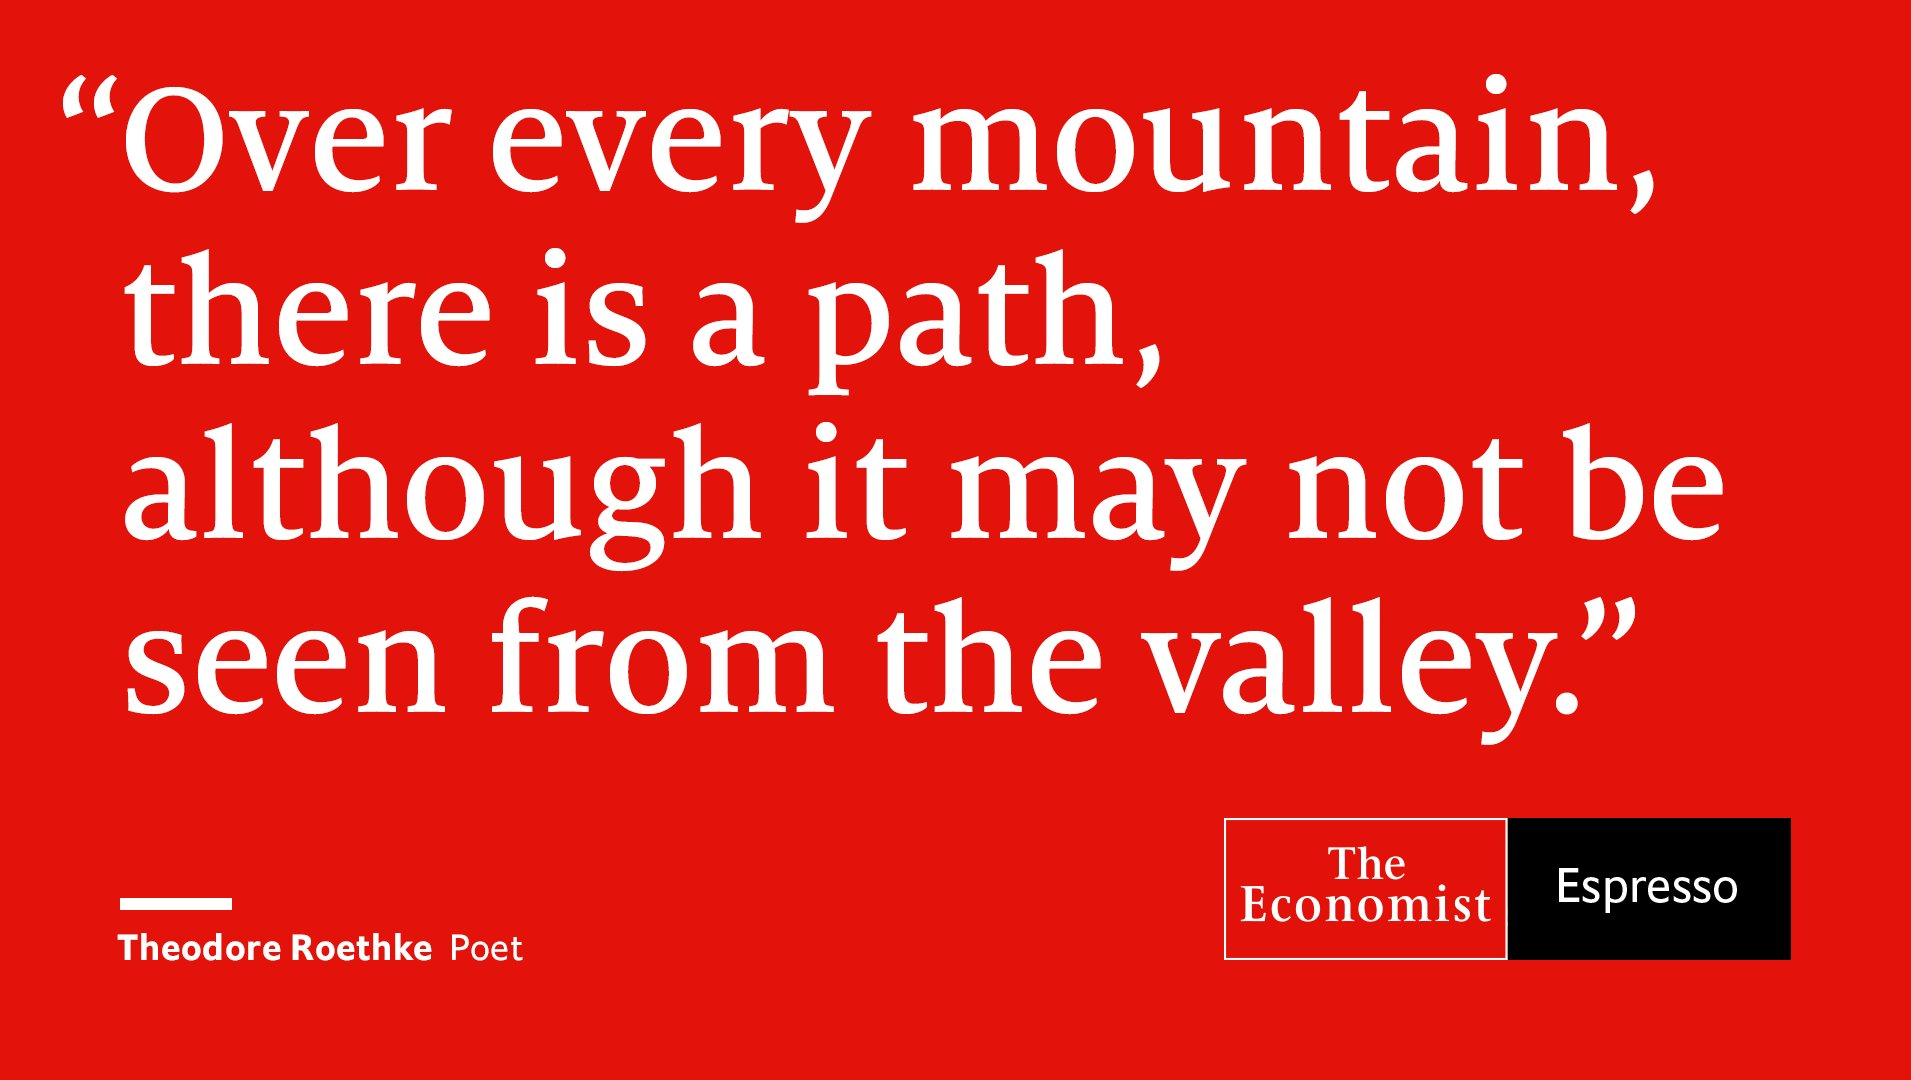 Our quote of the day is from American poet Theodore Roethke https://t.co/nTCdT8eKhK